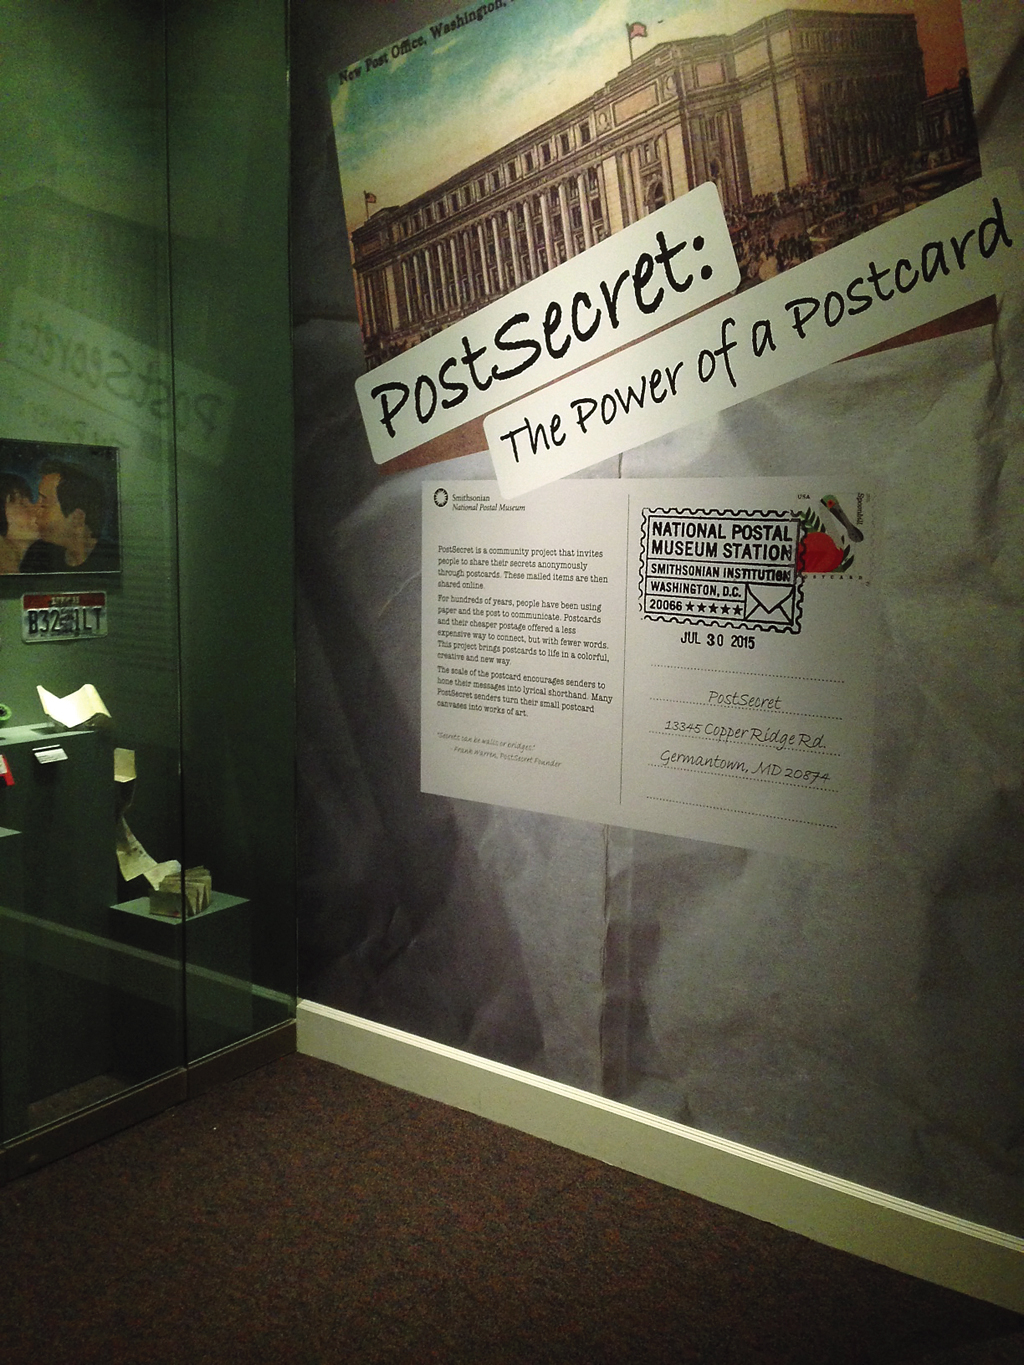 postsecret-exhibit-national-postal-museum-2015